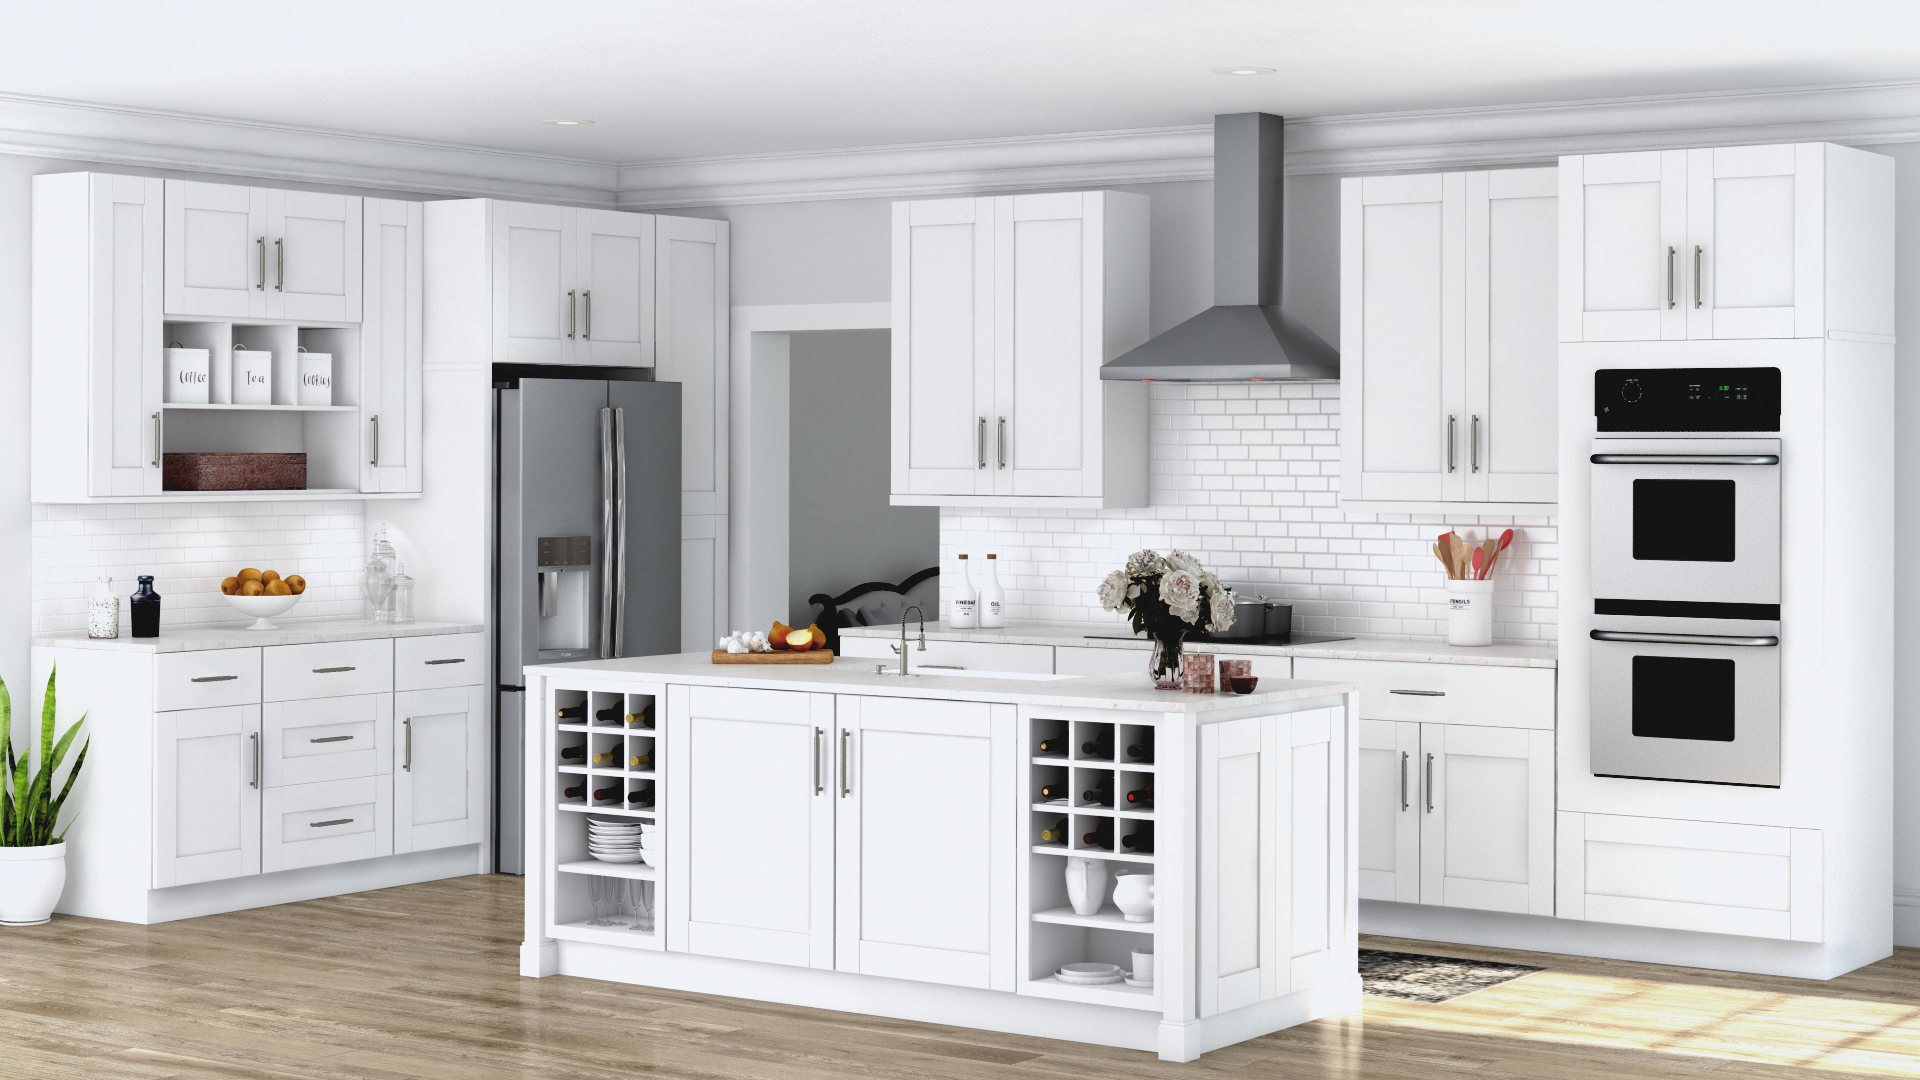 Shaker White Coordinating Cabinet Hardware Kitchen The Home Depot